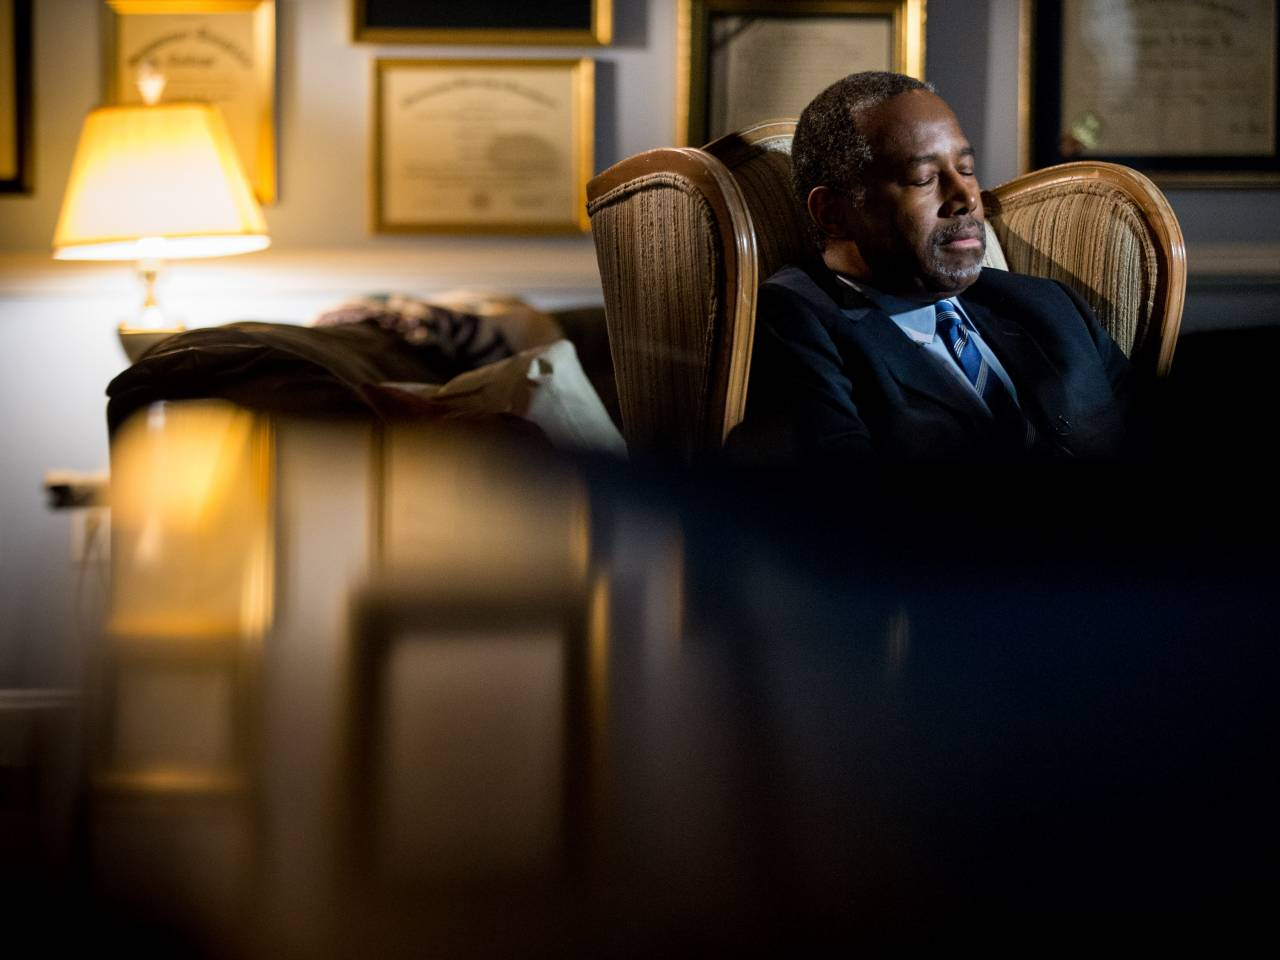 hud secretary front-runner ben carson recently called fair housing